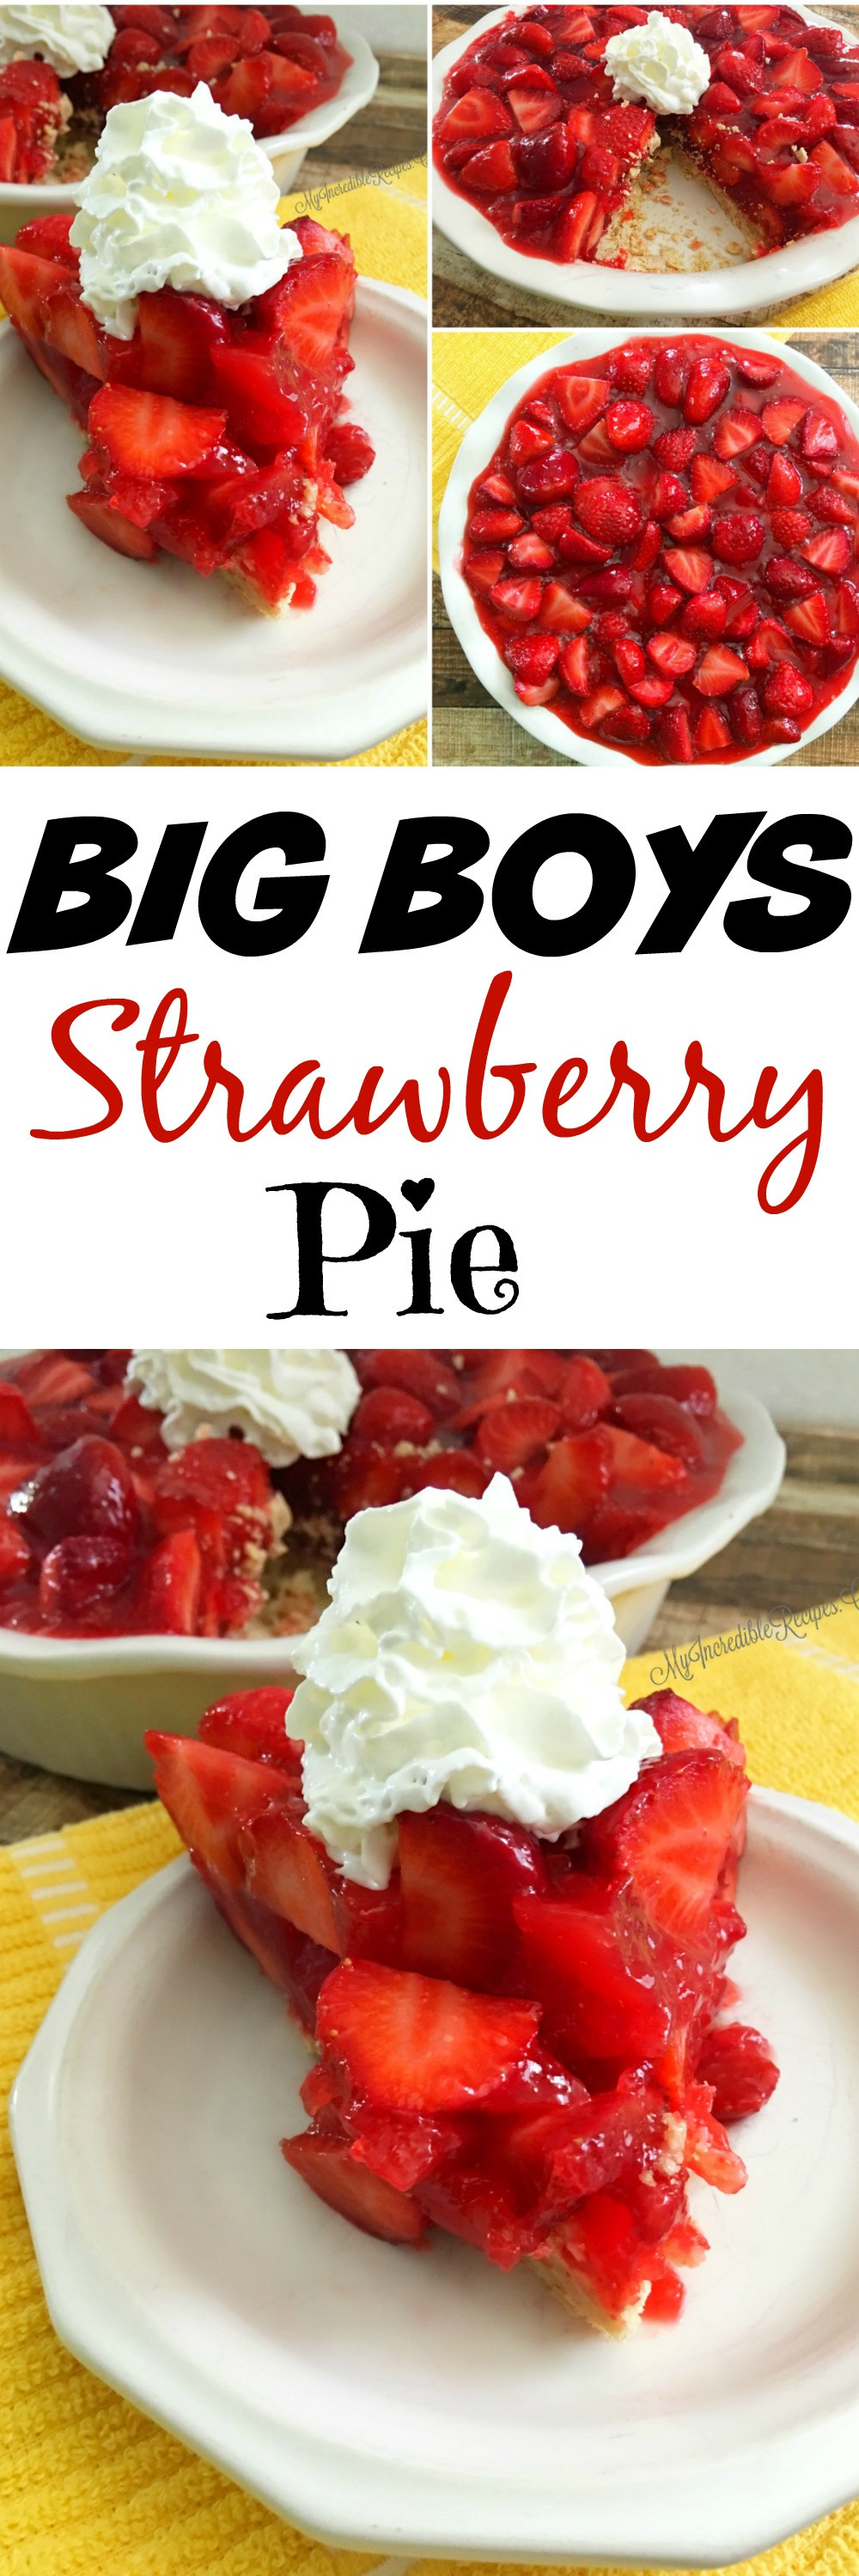 Strawberry Pie Recipes  Strawberry Pie